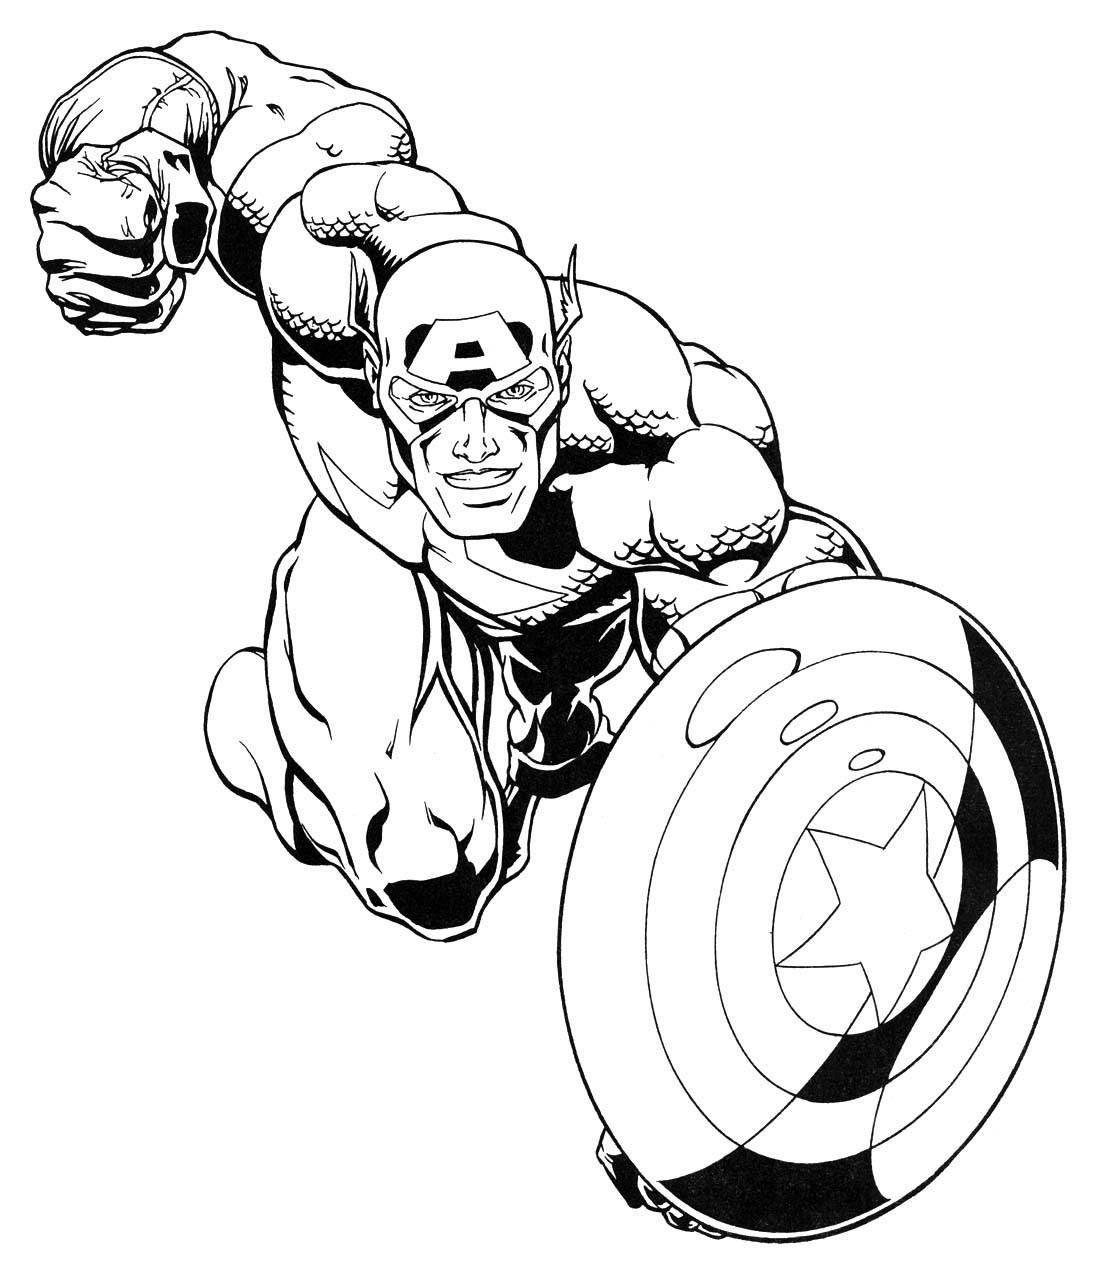 coloring pages superhero superhero coloring pages to download and print for free pages coloring superhero